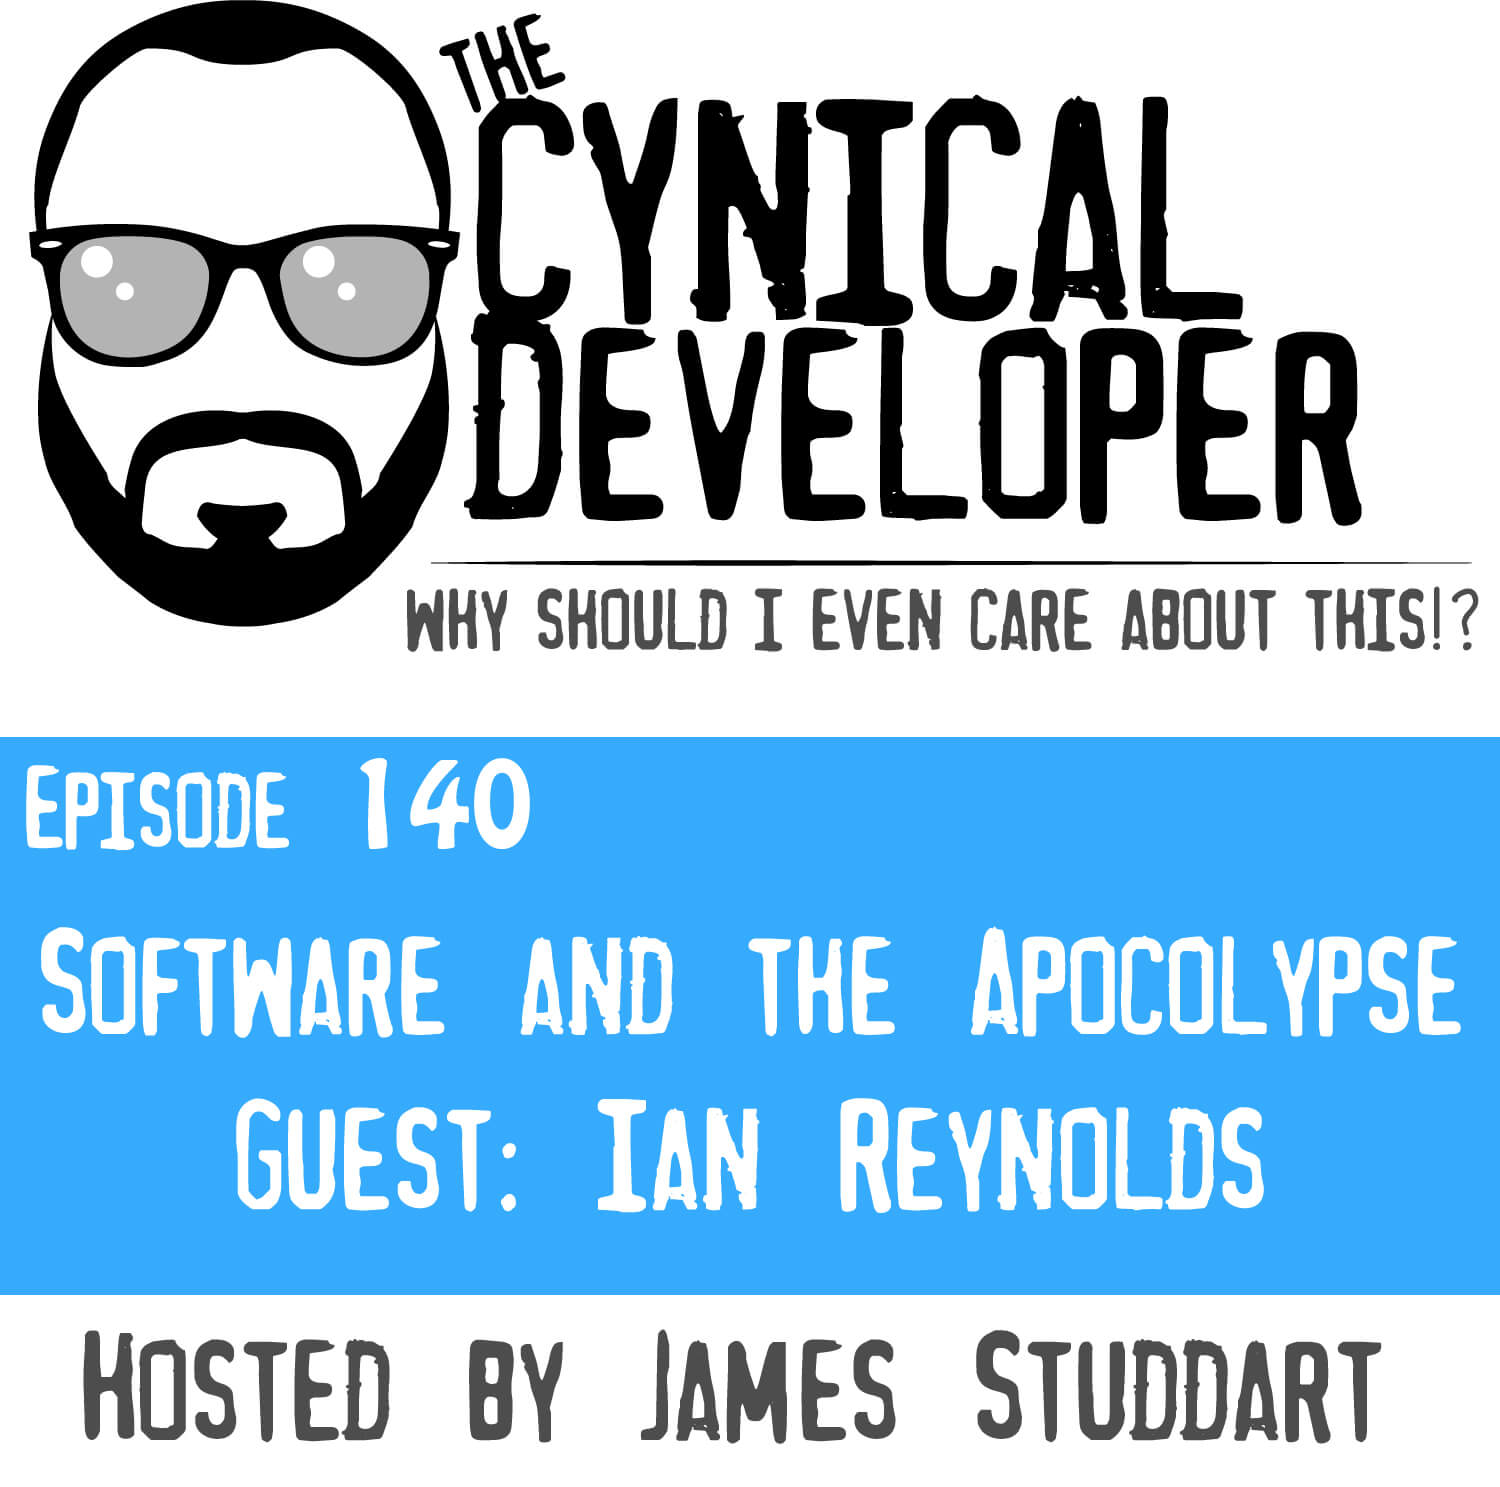 Episode 140 - Software and the Apocolypse